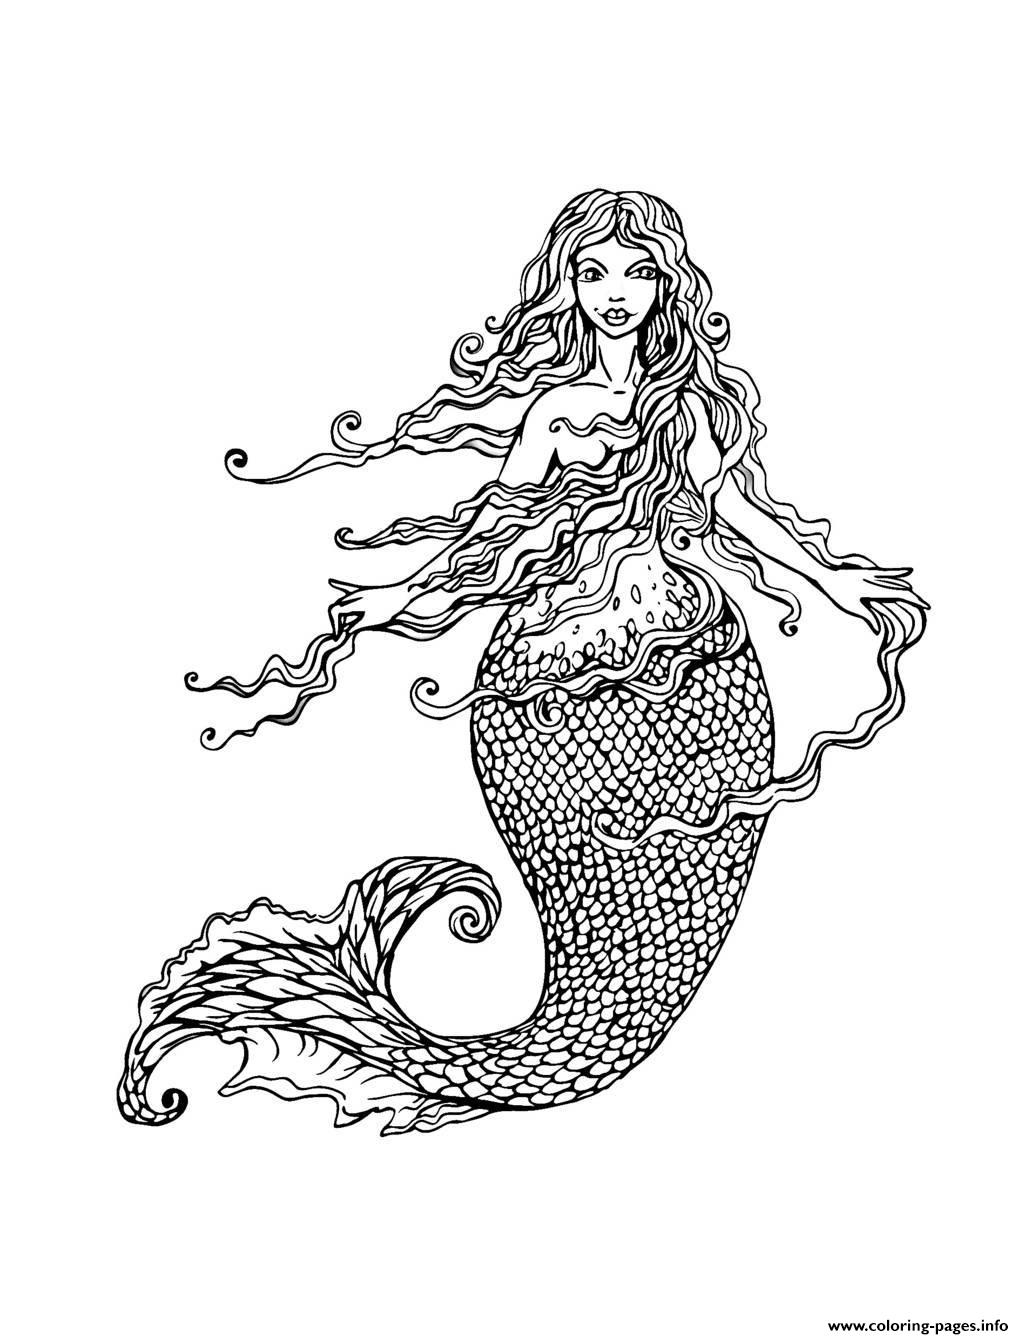 Adult Mermaid With Long Hair By Lian2011 Coloring Pages Printable